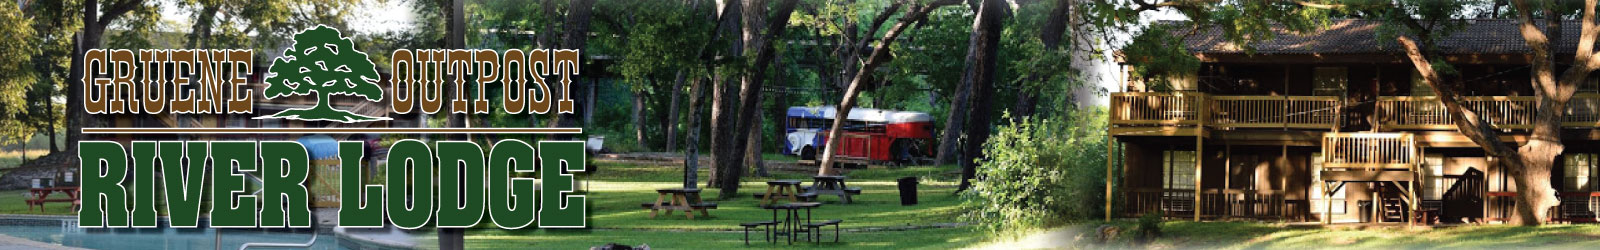 nb-today-above-header-image-gruene-outpost-river-lodge